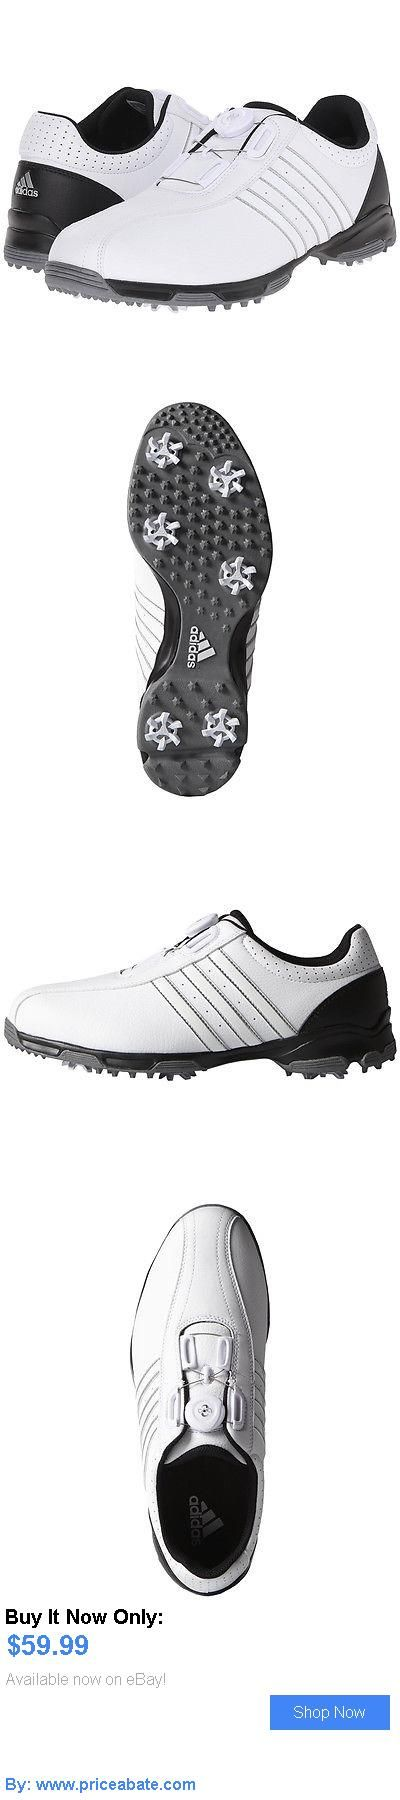 Men Shoes: Adidas Mens 360 Traxion Boa Golf Shoes, Brand New BUY IT NOW ONLY: $59.99 #priceabateMenShoes OR #priceabate